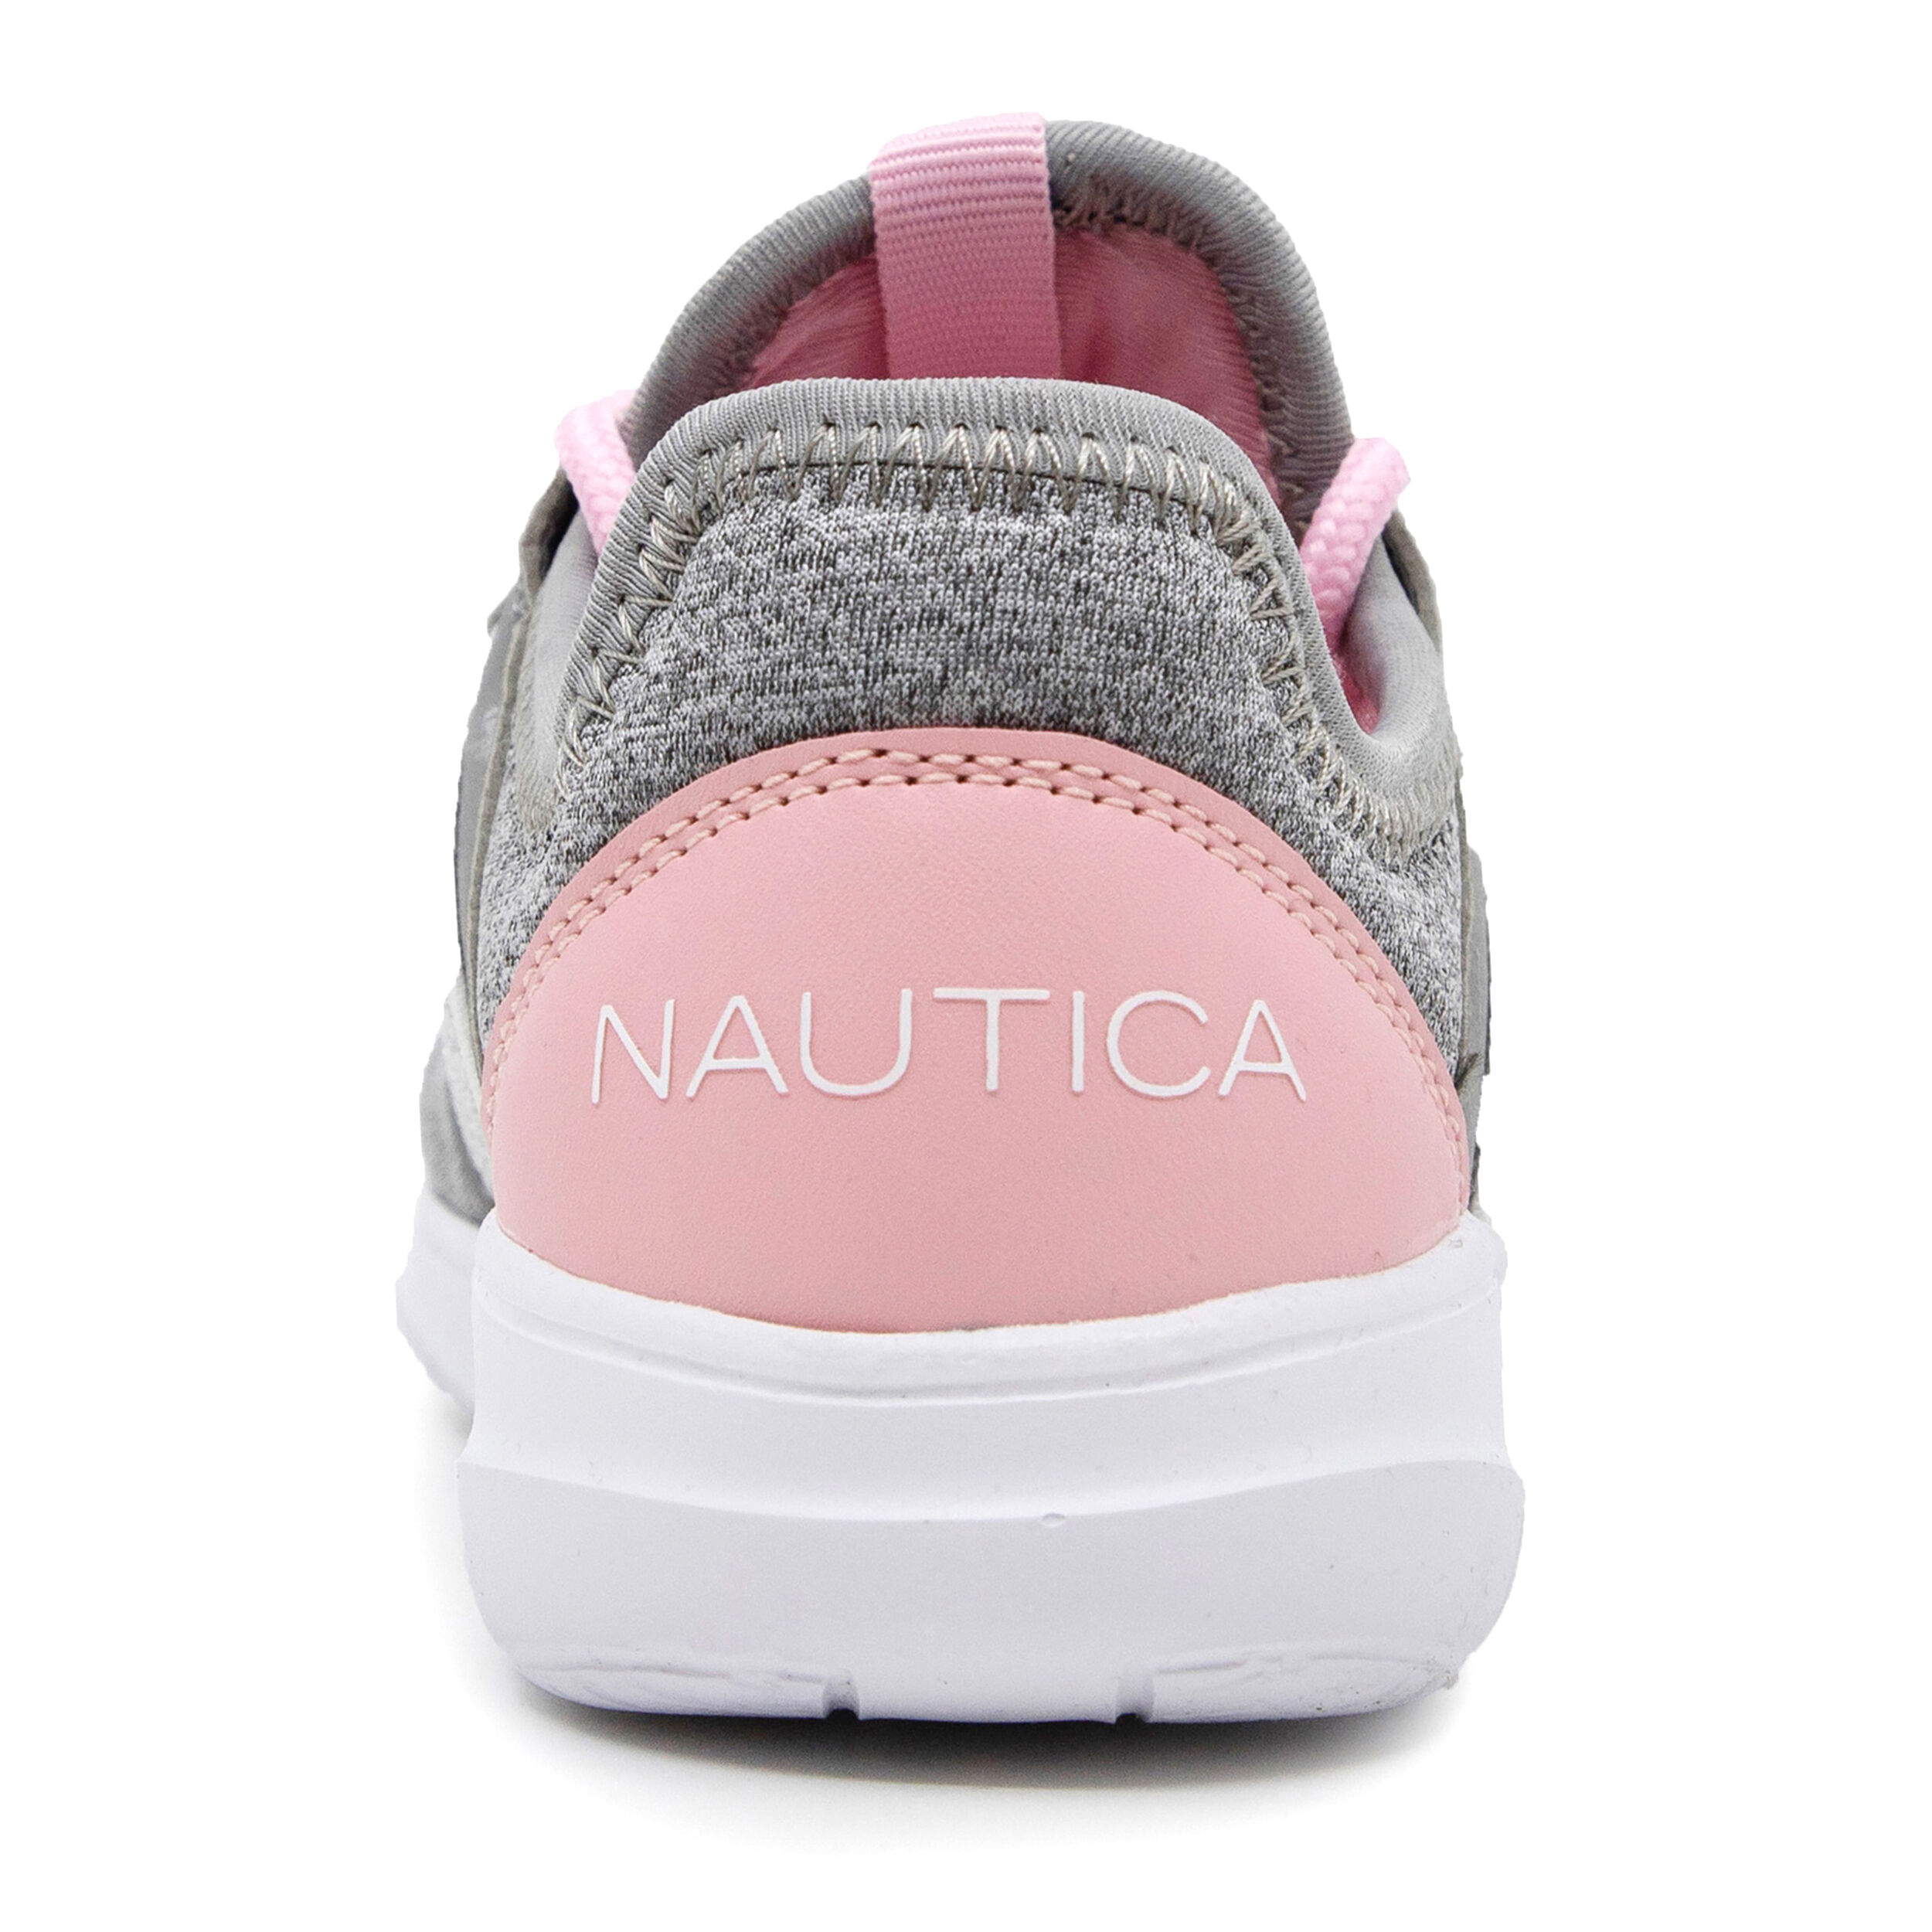 GIRLS COMFY ALL DAY SNEAKER | Nautica